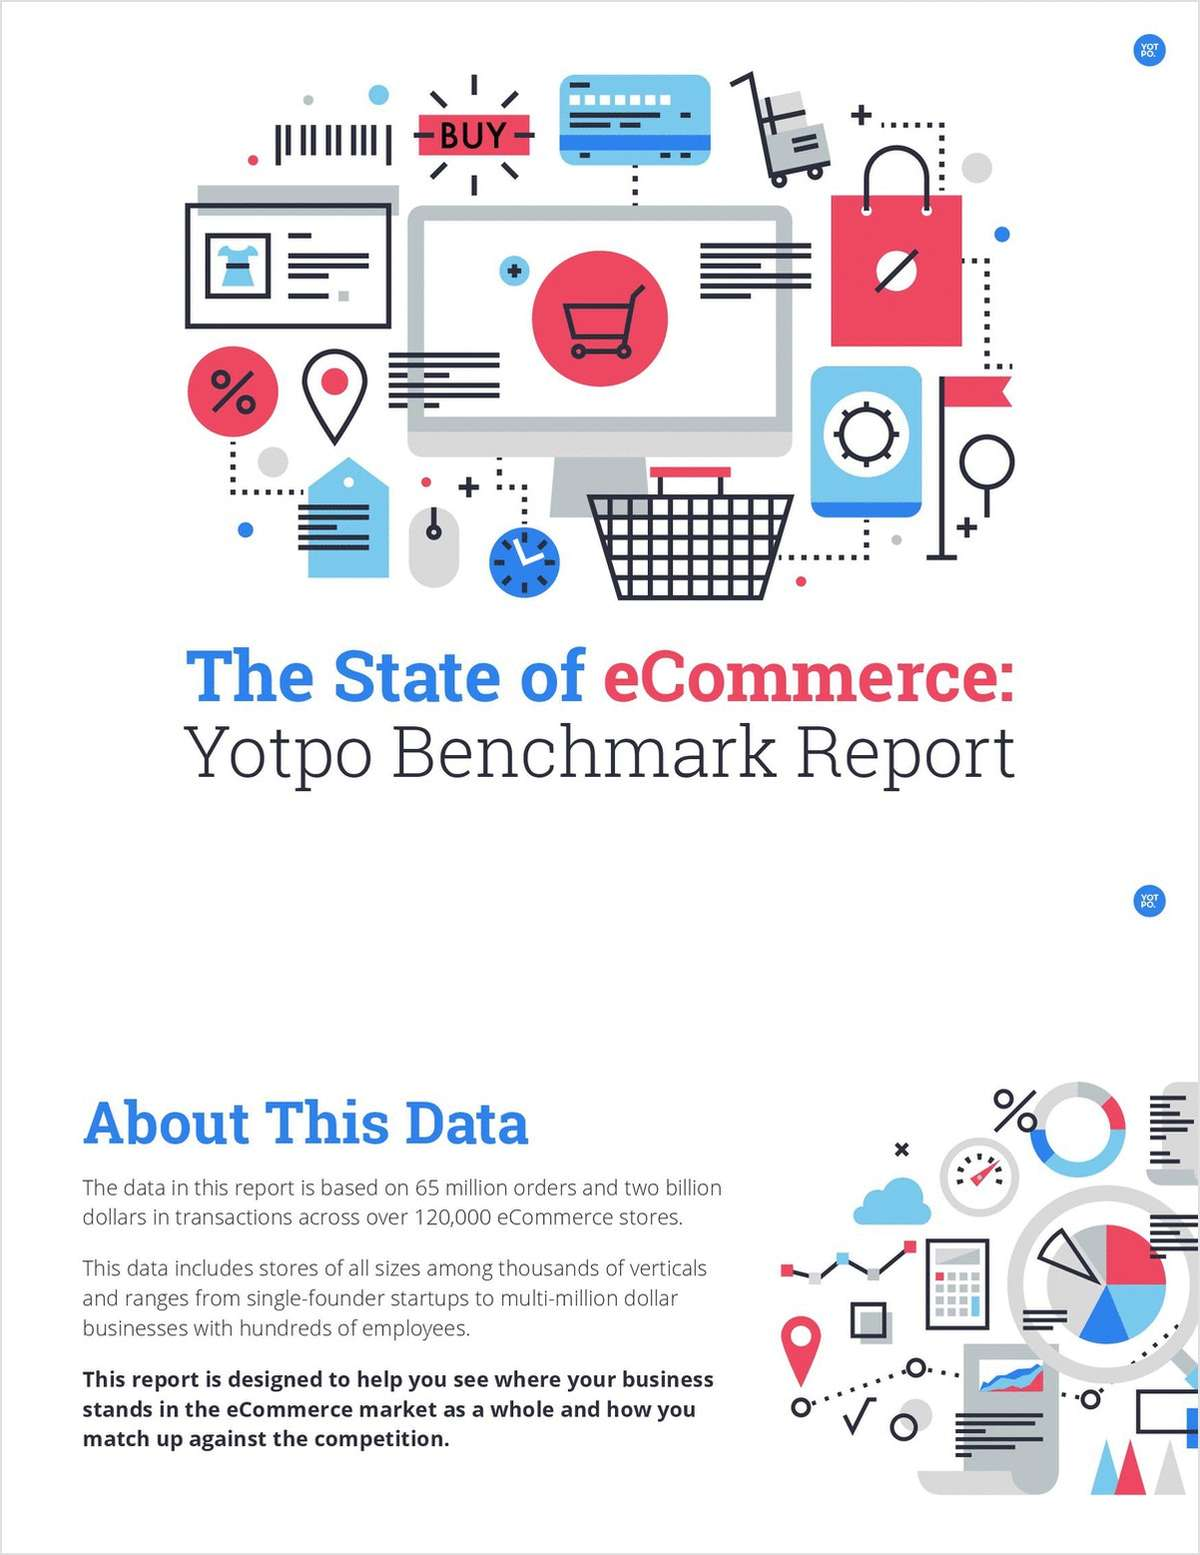 The State of eCommerce: Yotpo Benchmark Report